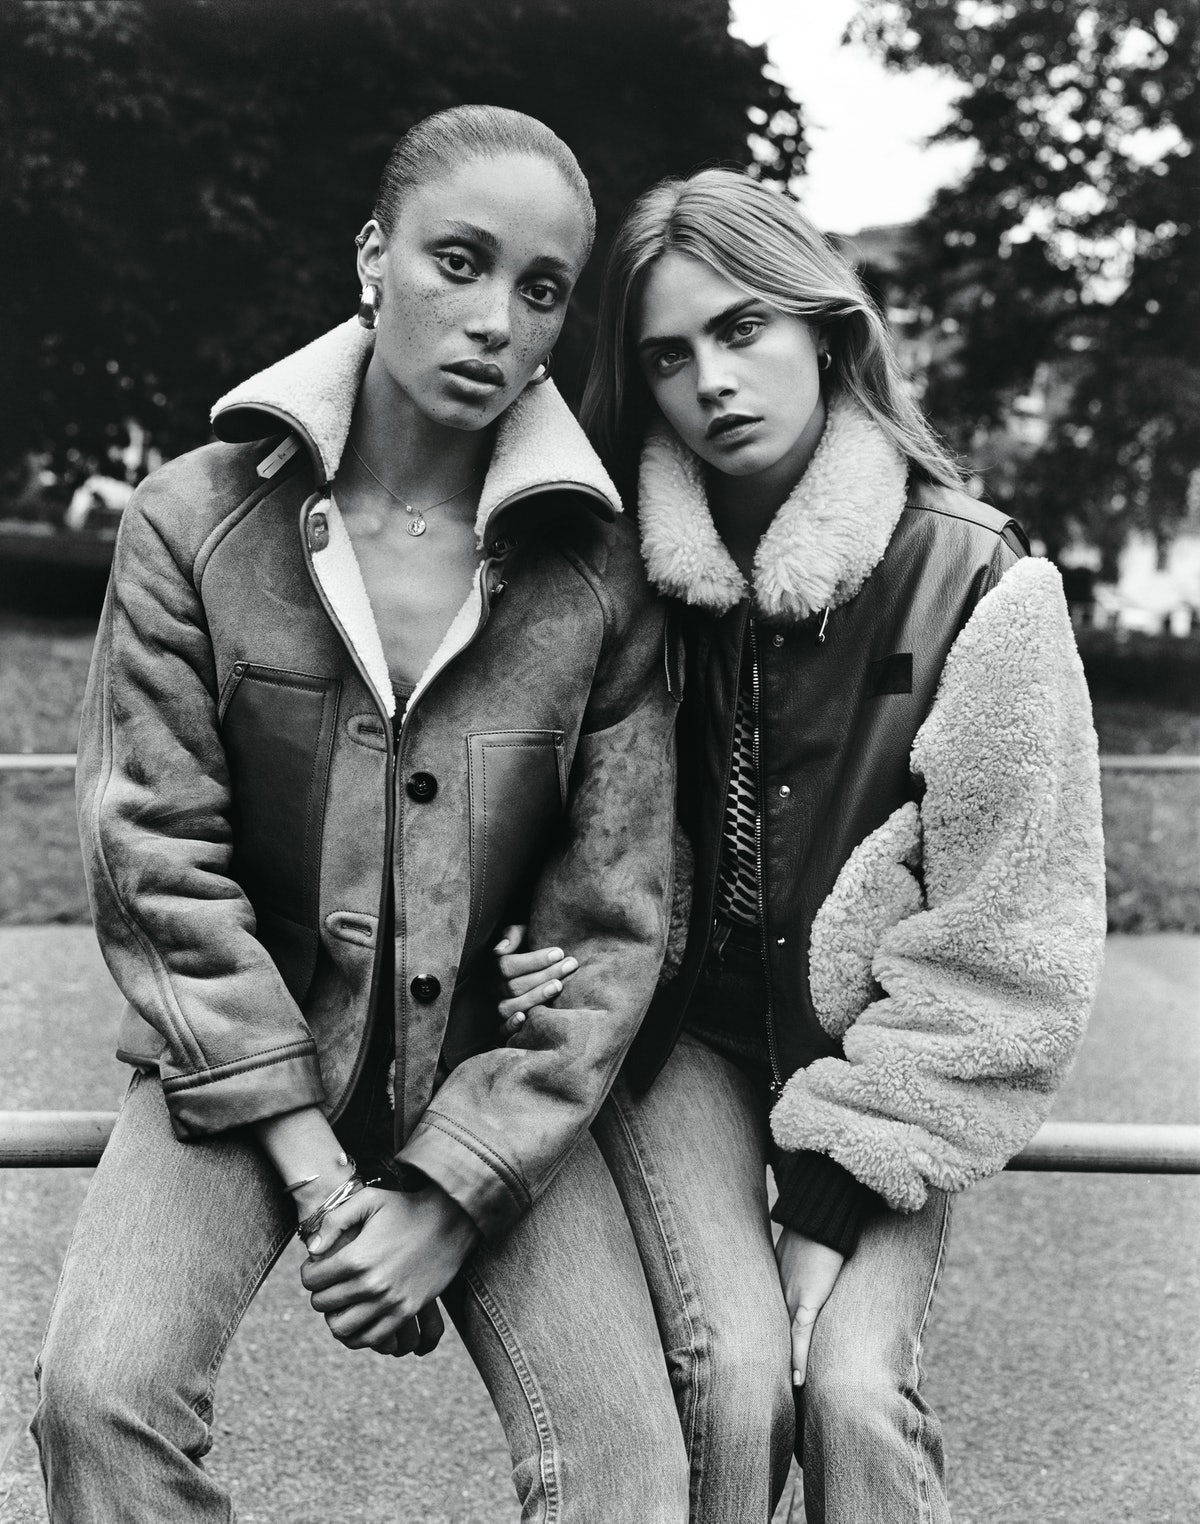 LEADERS OF THE PACKDelevigne's pal Adwoa Aboah, a Ghanaian-English actress and model who is the daug...